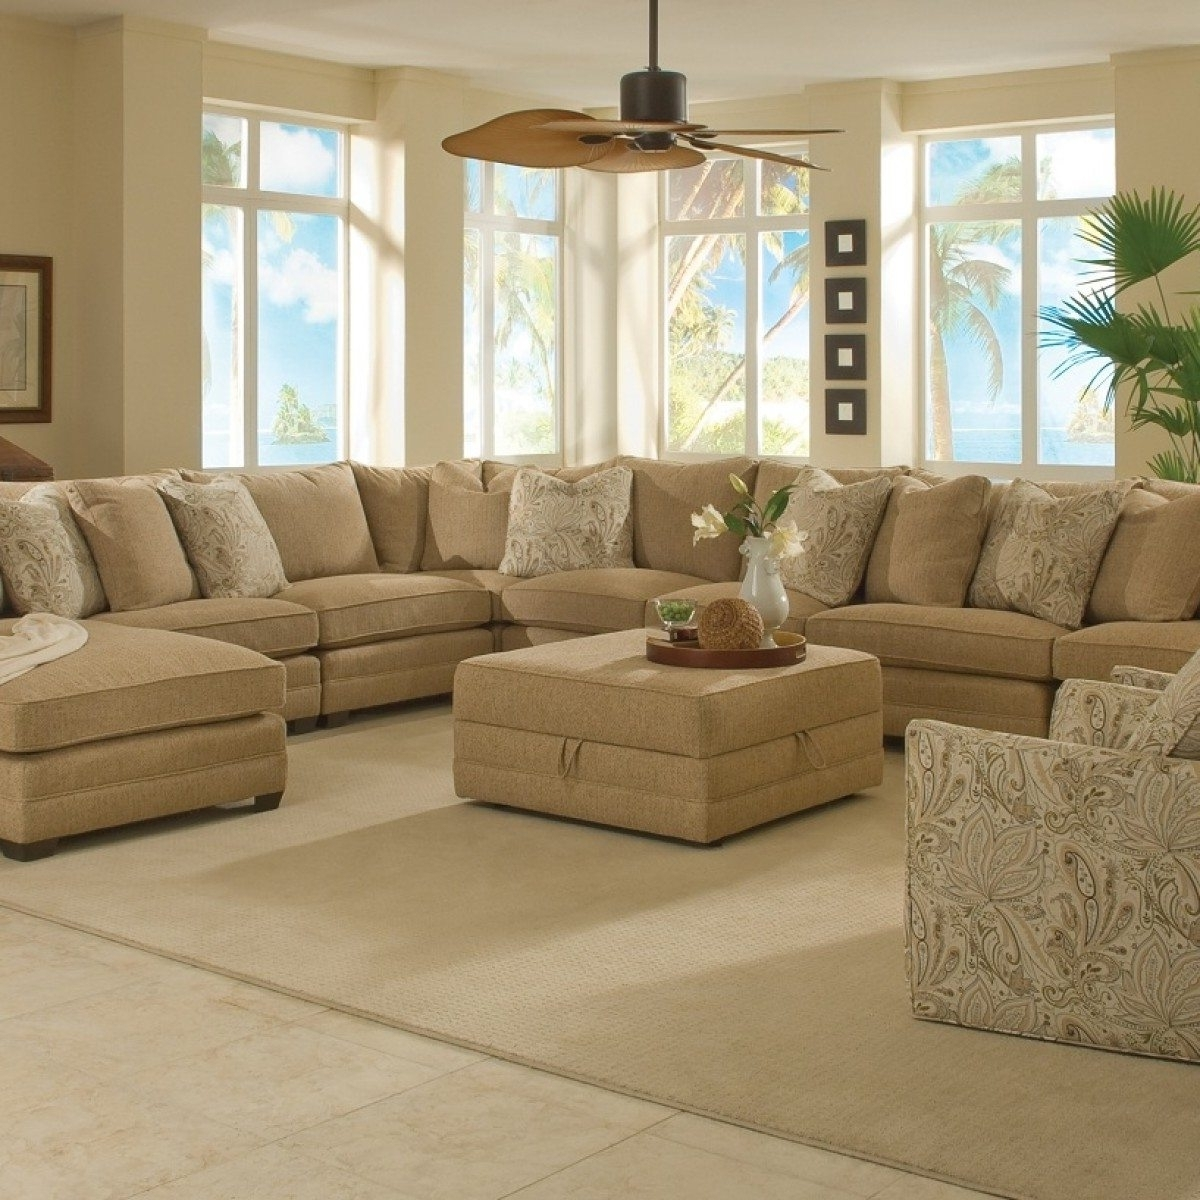 2020 Latest Couches With Large Ottoman